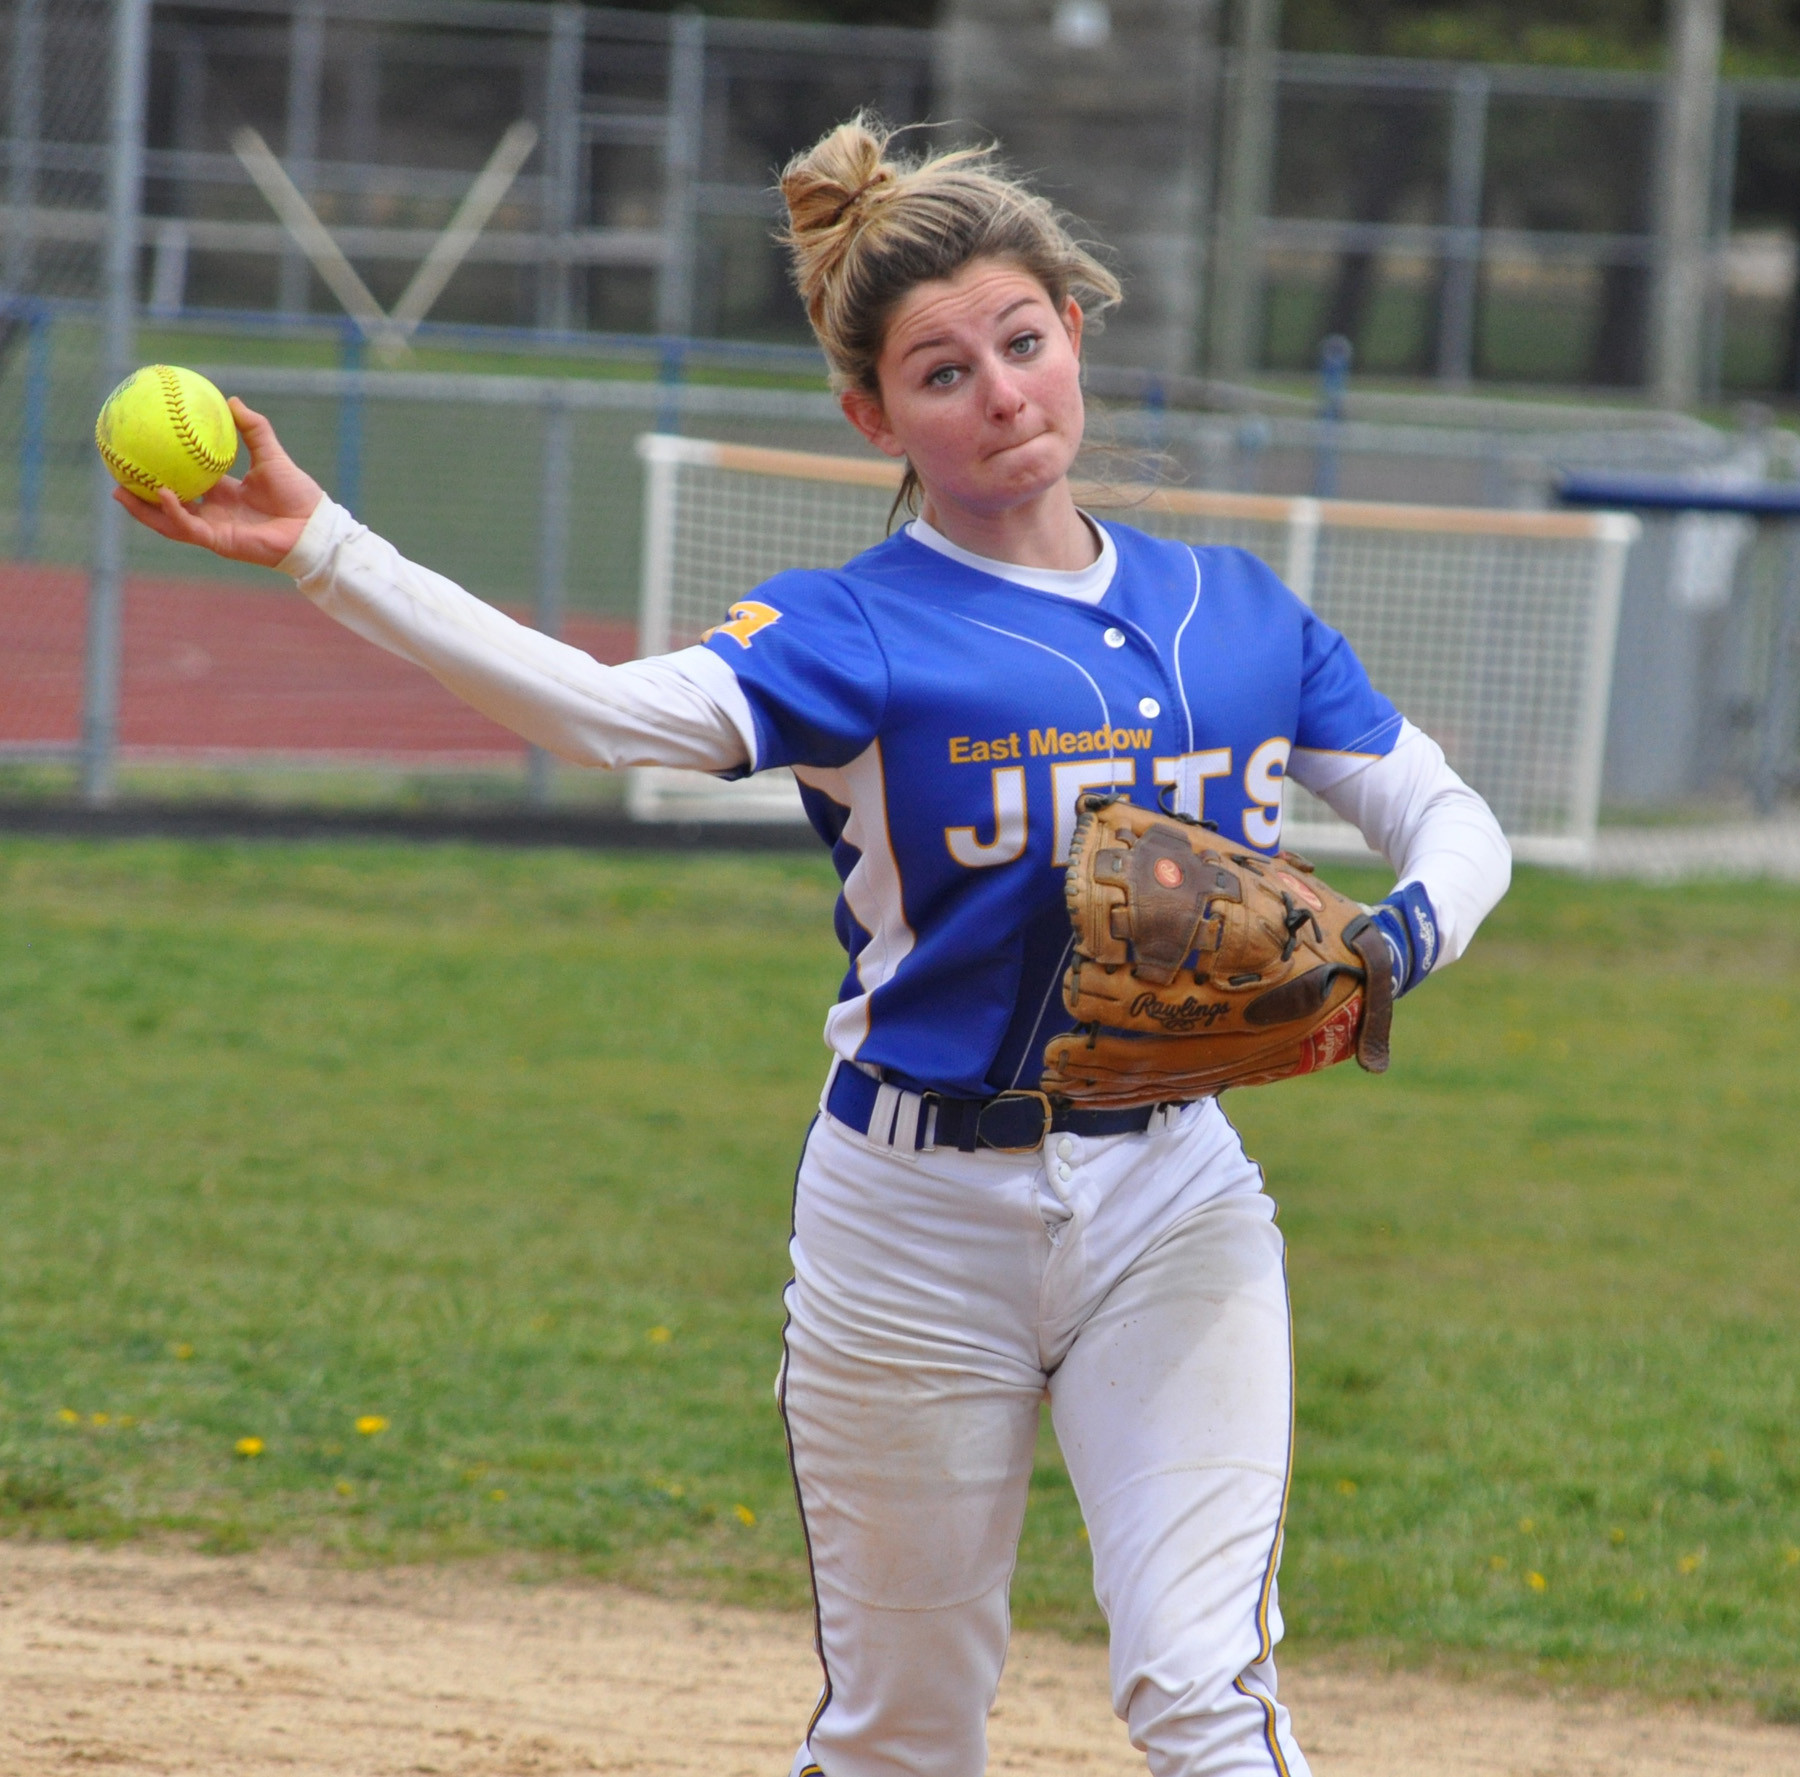 East Meadow's Ariel Cornfield, who homered in last Saturday's 7-6 loss to MacArthur, fires the ball to first base to record an out in the fourth inning.